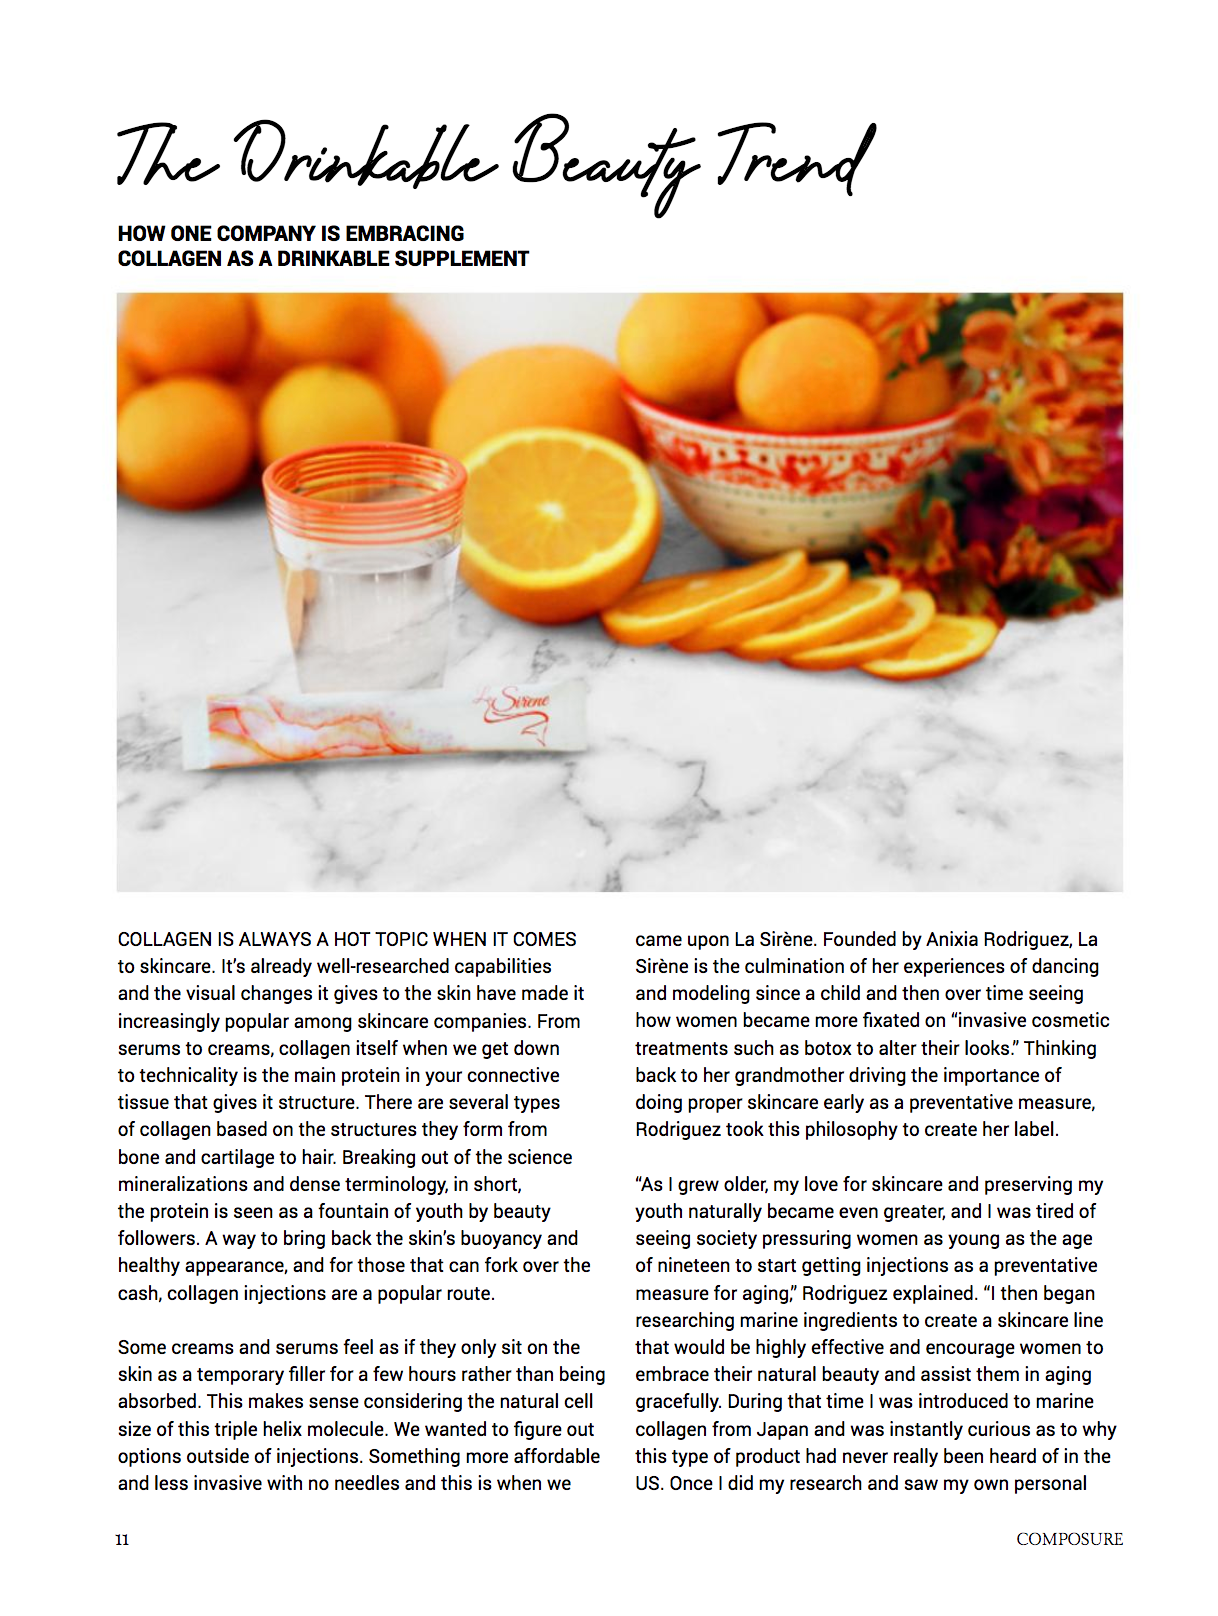 Composure Magazine, Parveen Kaur, Drinkable Beauty Trend, La Sirene Beauty Collagen, Anixia Rodriguez - April 2020